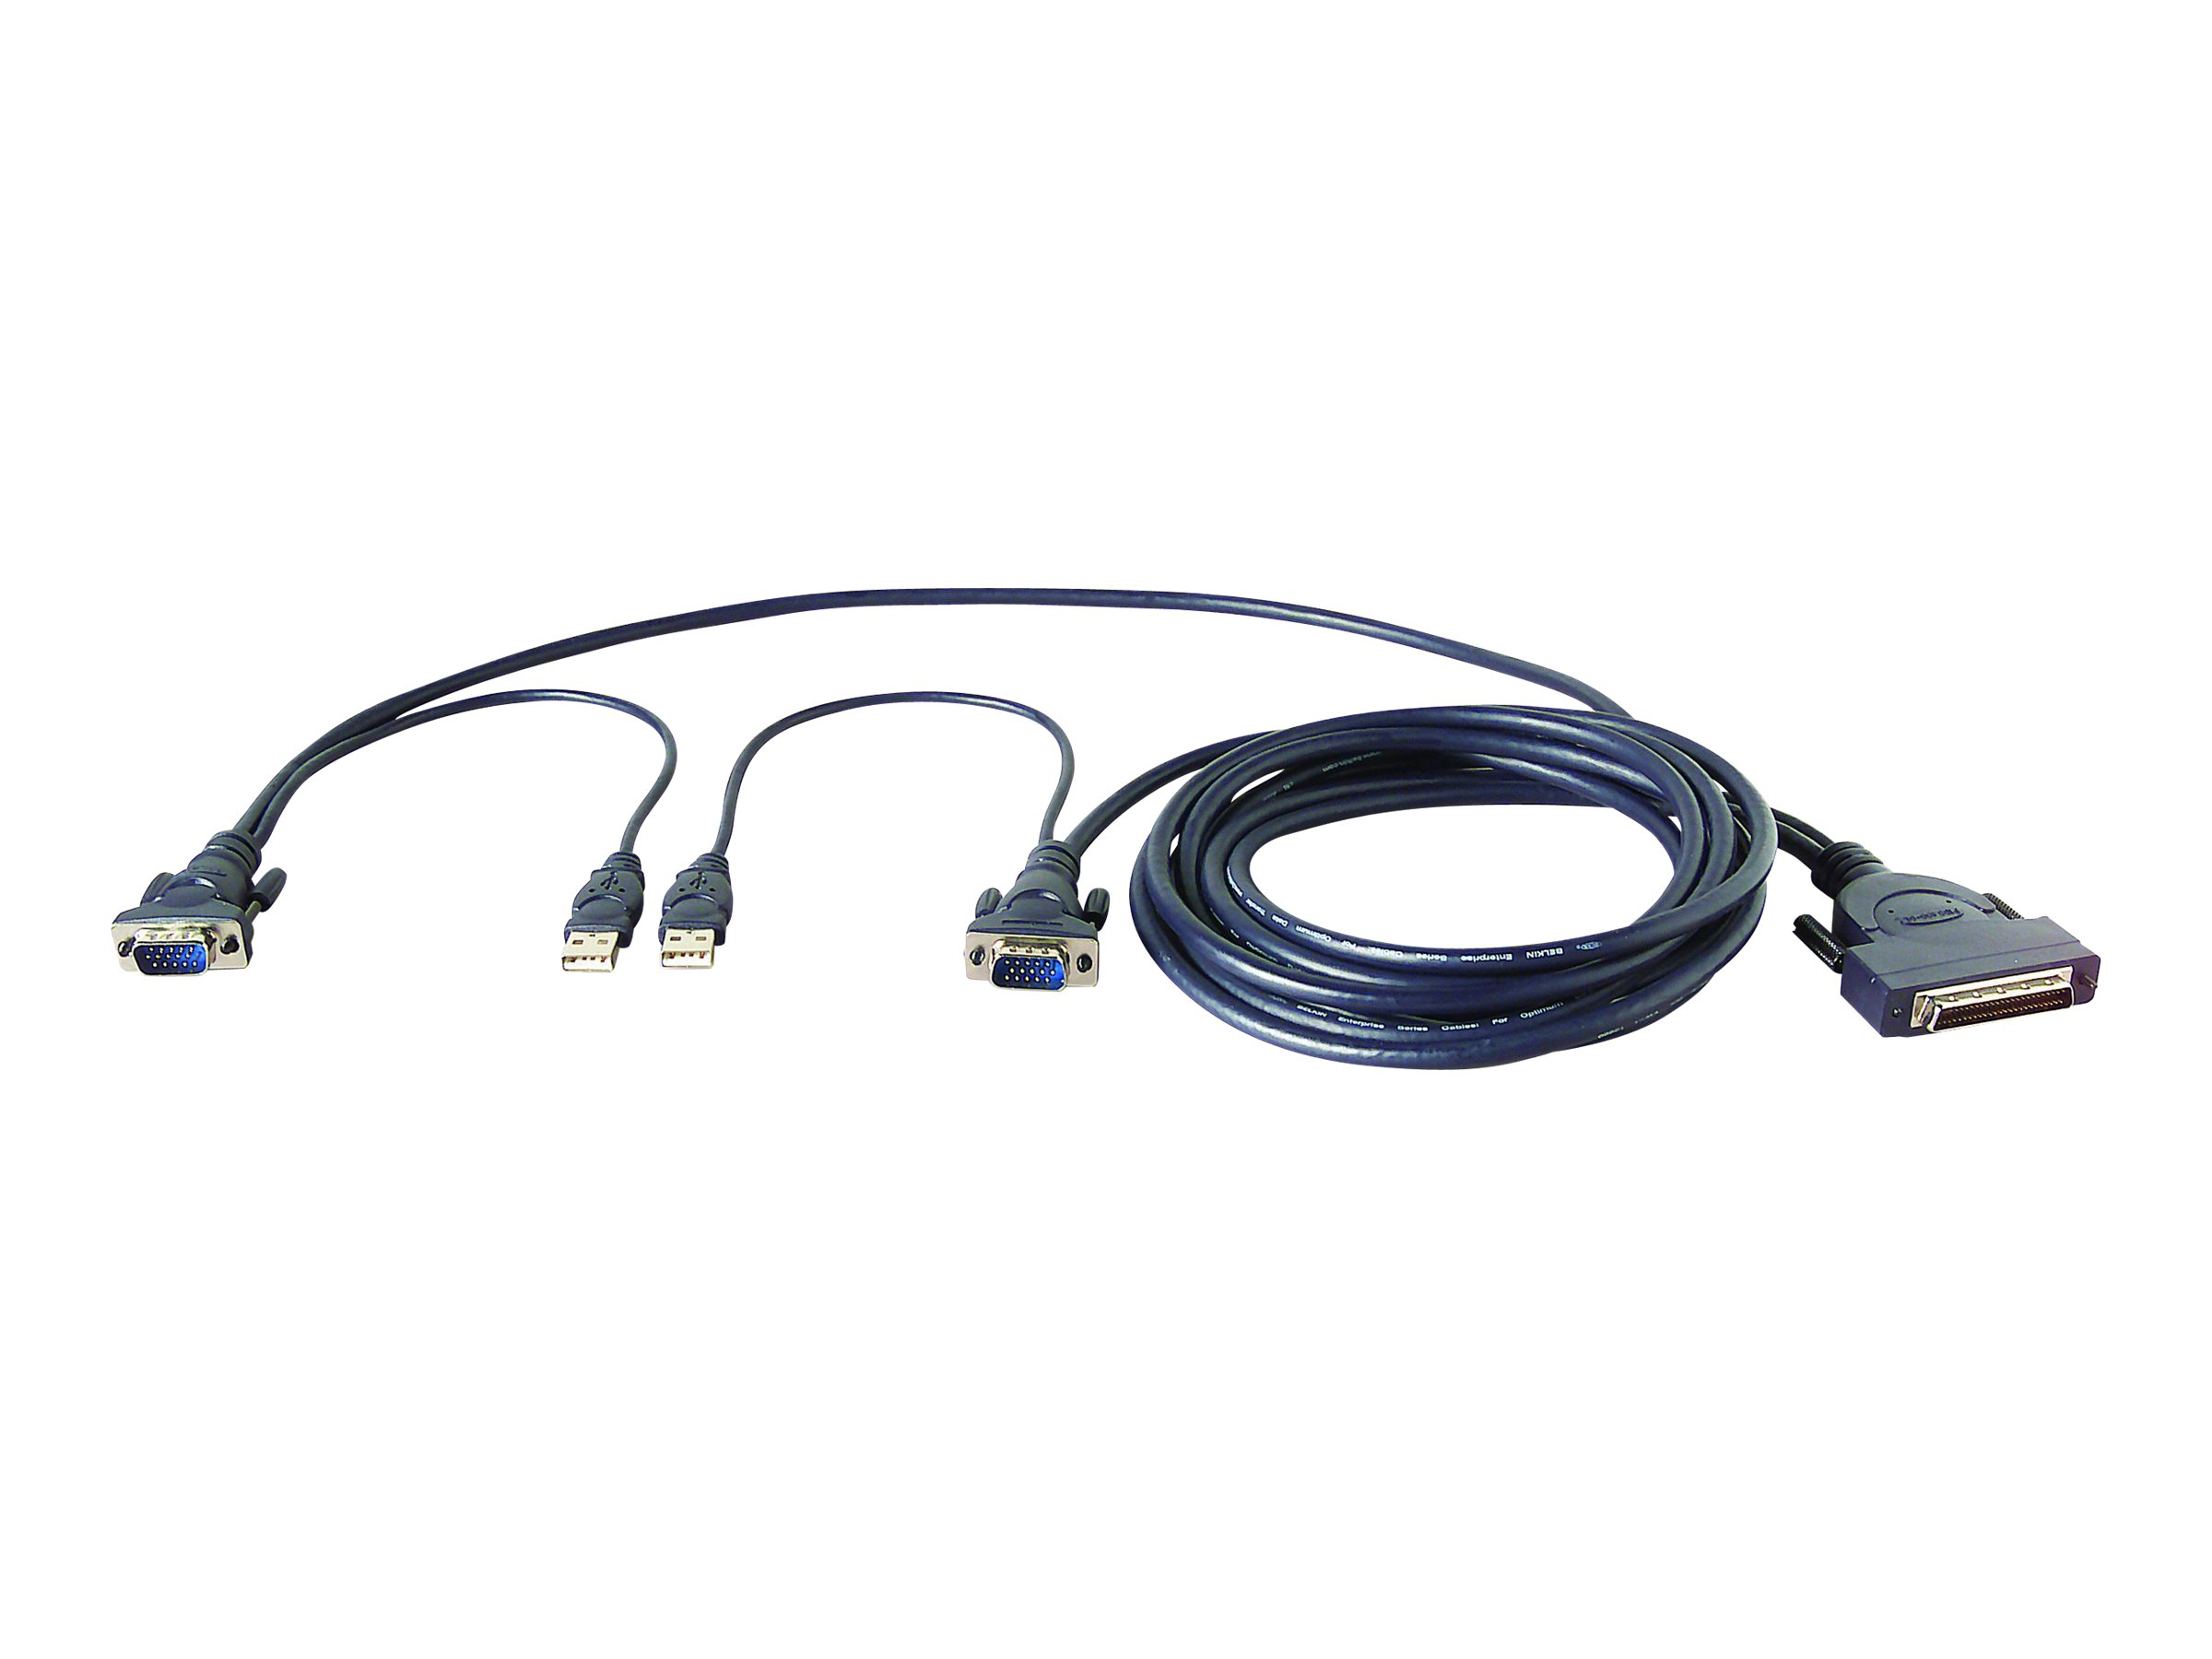 Belkin OmniView Dual Port Cable, USB - Tastatur- / Video- / Maus- (KVM-) Kabel - USB, HD-15 (M) bis DB-25 (M) - 1.8 m - geformt - B2B